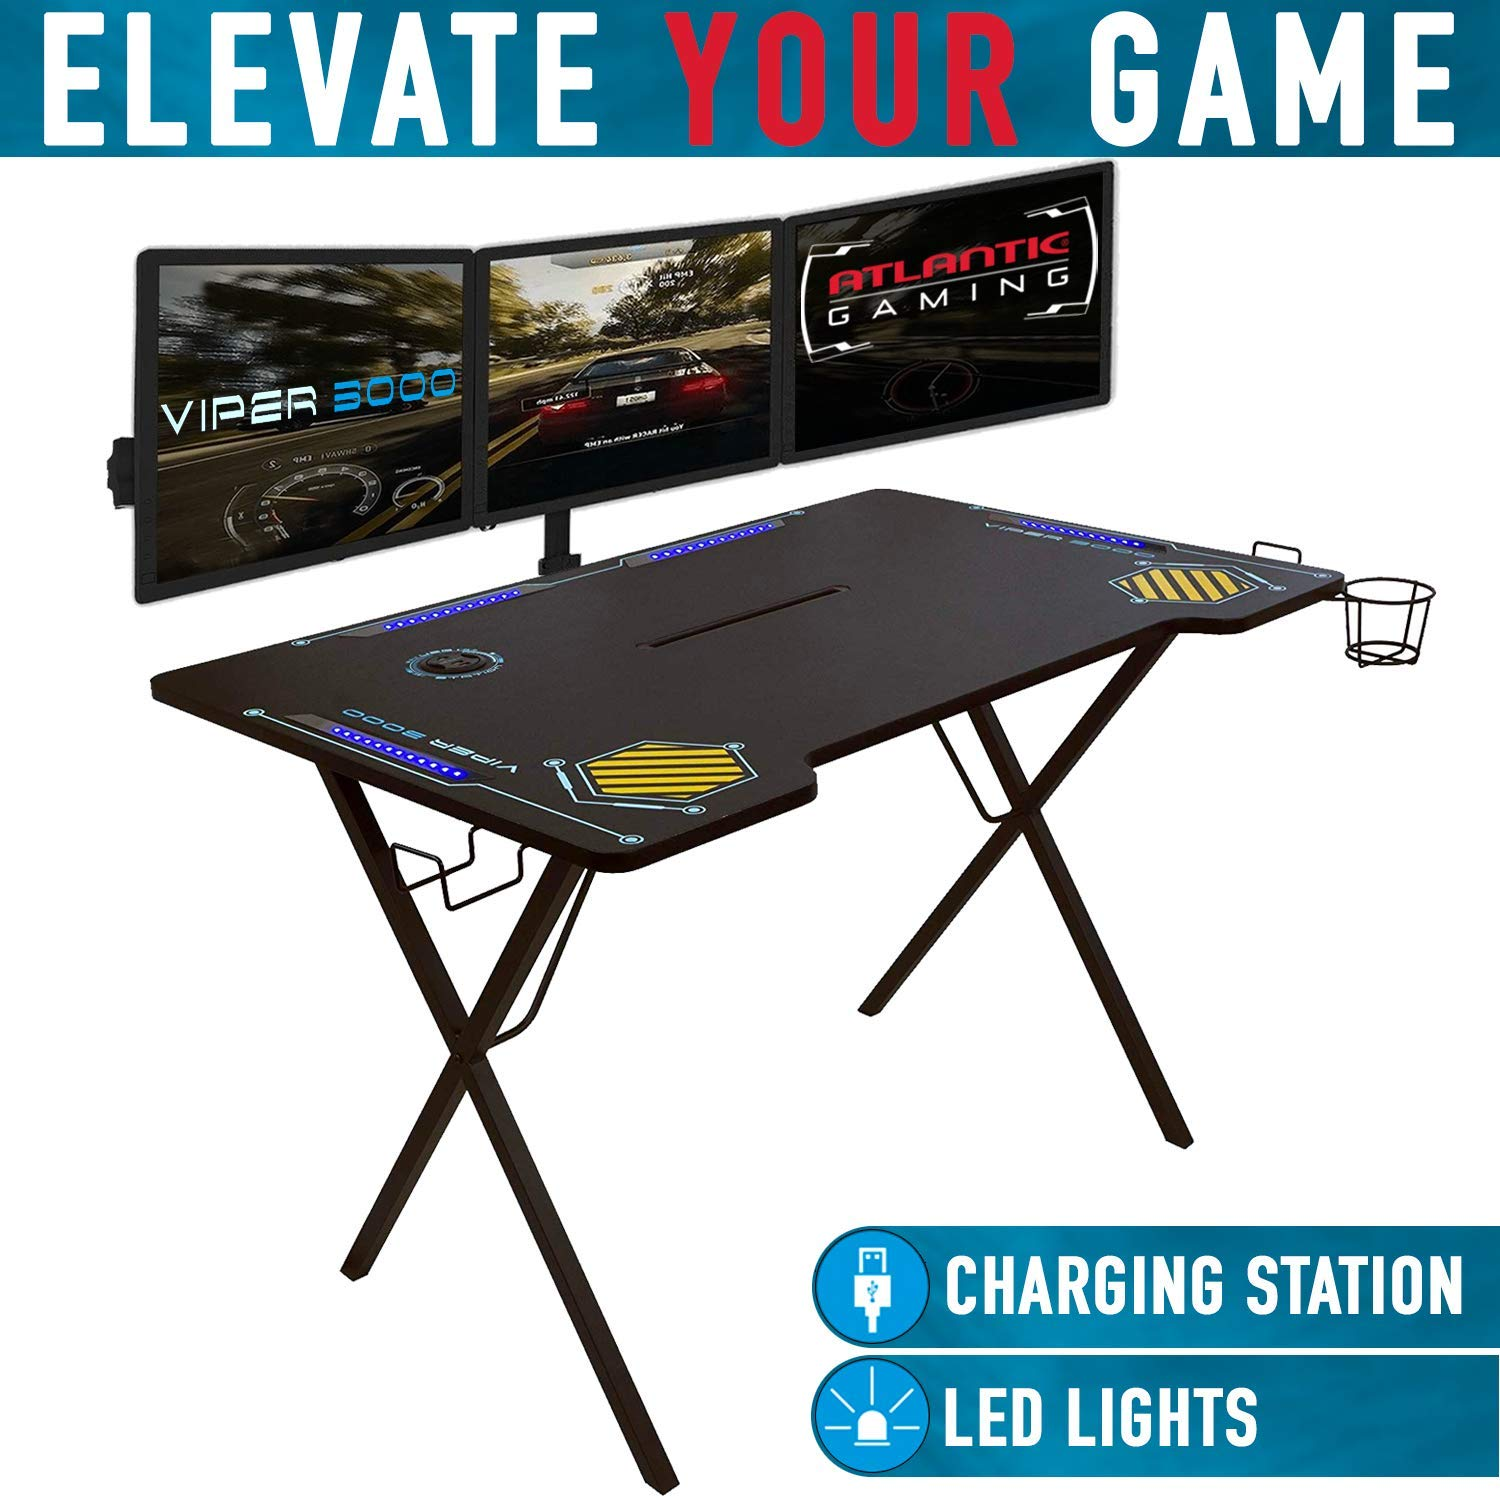 Atlantic Gaming Desk Viper 3000 - Computer Gaming Desk, LED Illumination, Three USB 3.0 Ports, Tablet/Phone Slot, Cup Holder, Dual Headphone Hooks, Storage Tray, Satin Finish Surface, PN33906164 by Atlantic